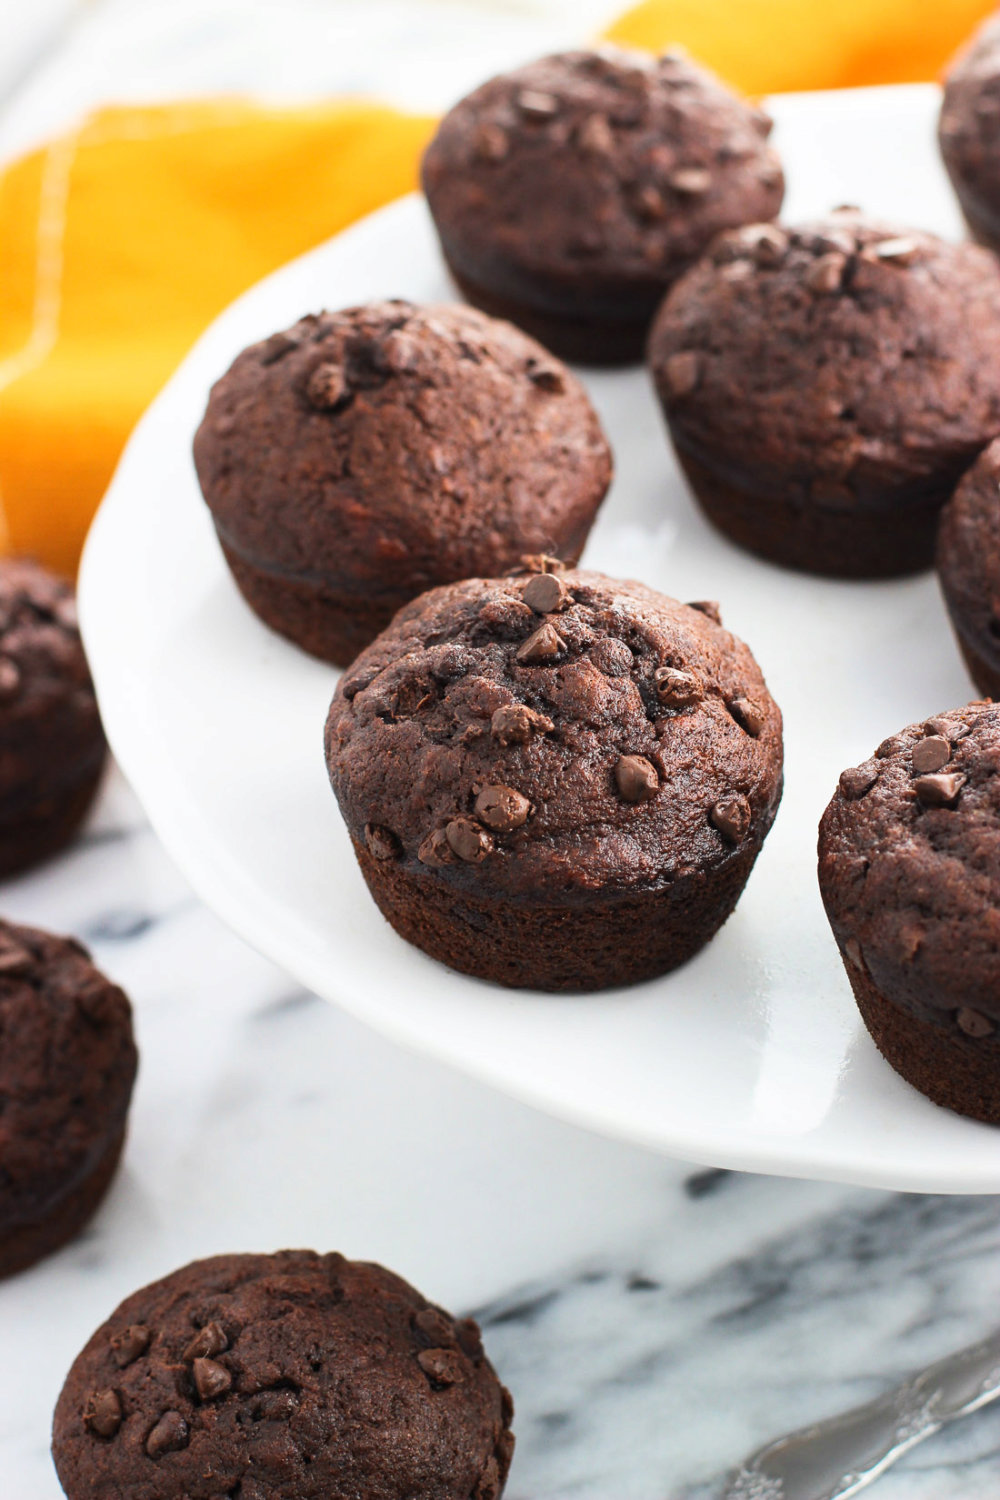 Chocolate Pudding Muffins with Bananas